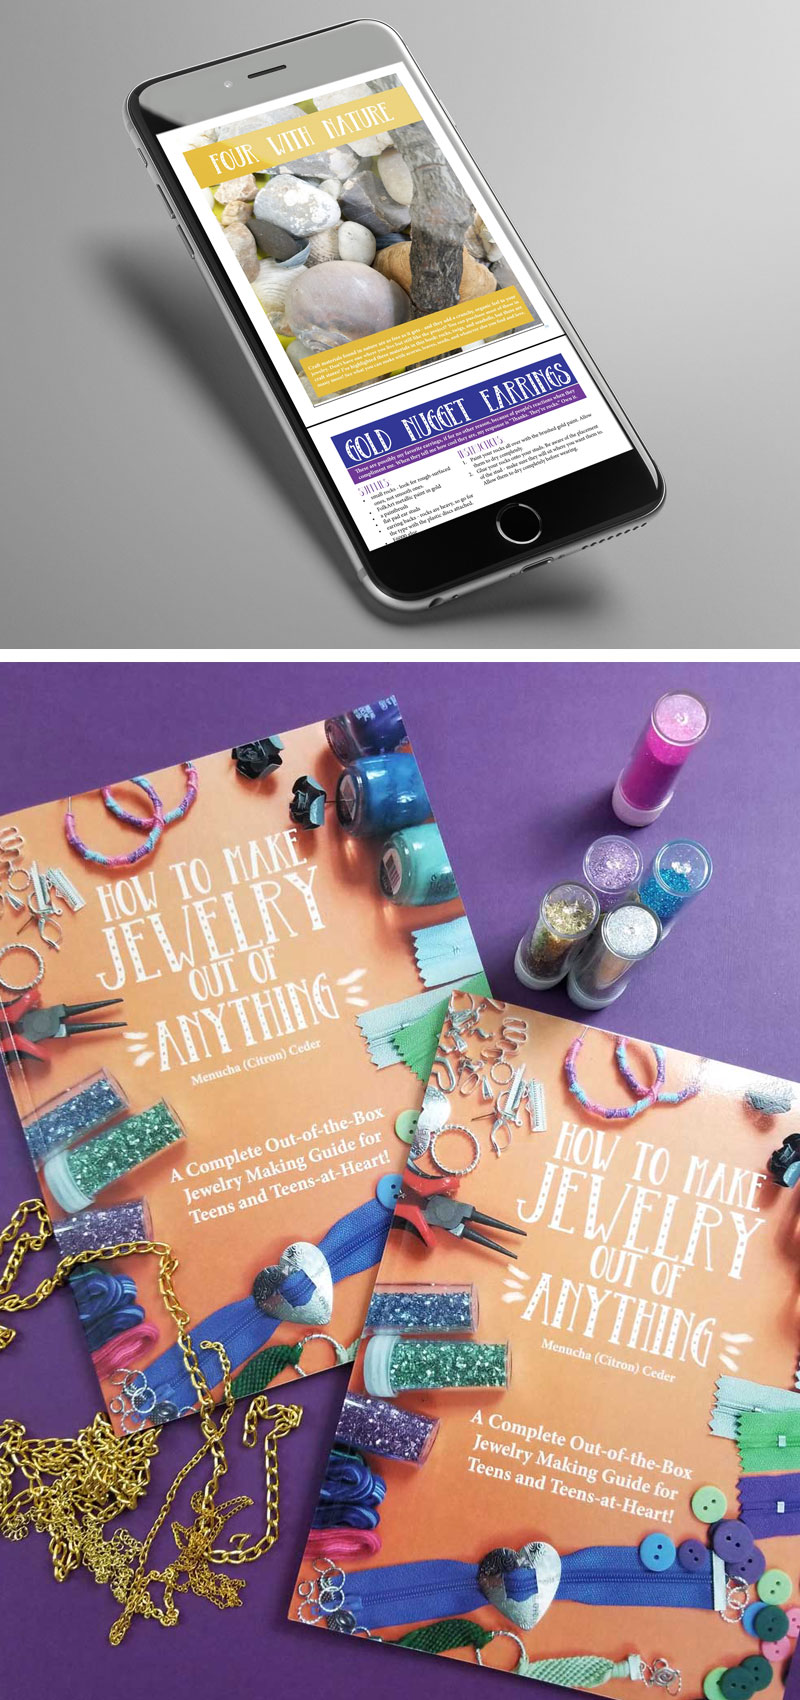 this cool jewelry making book is just what I needed - it's so different and unique - perfect for teens!